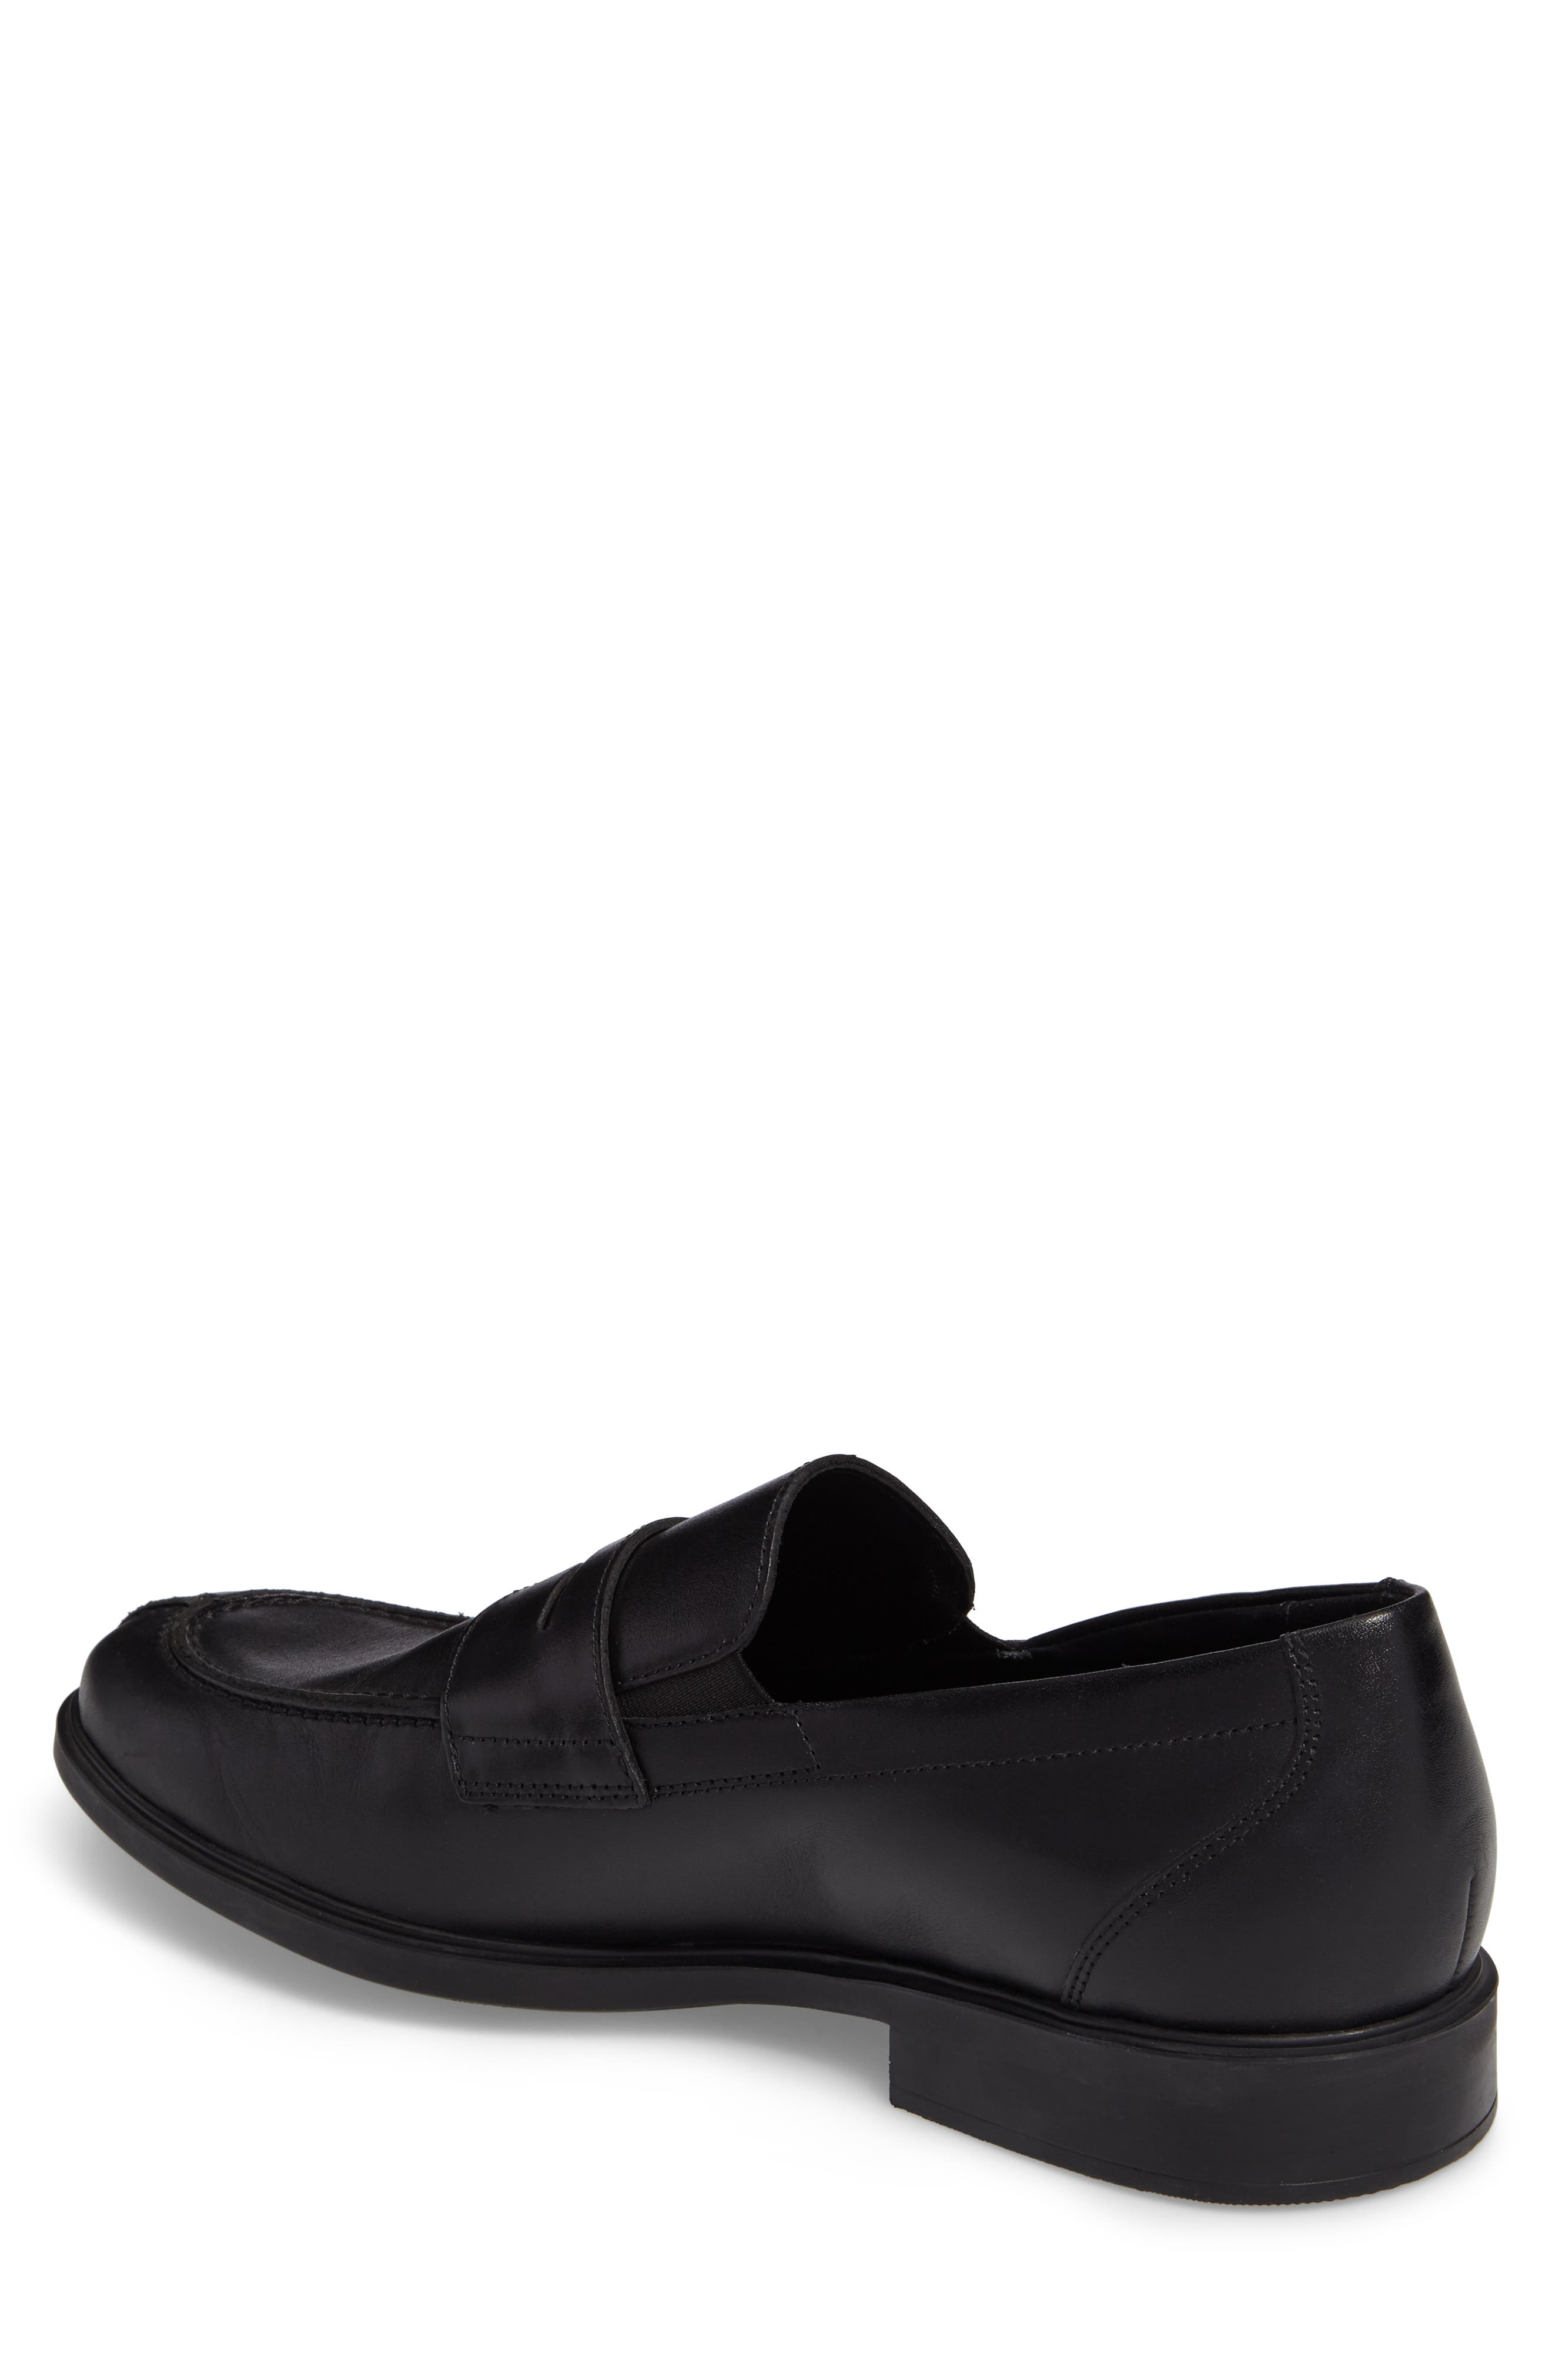 Fortino Loafer,                             Alternate thumbnail 3, color,                             001